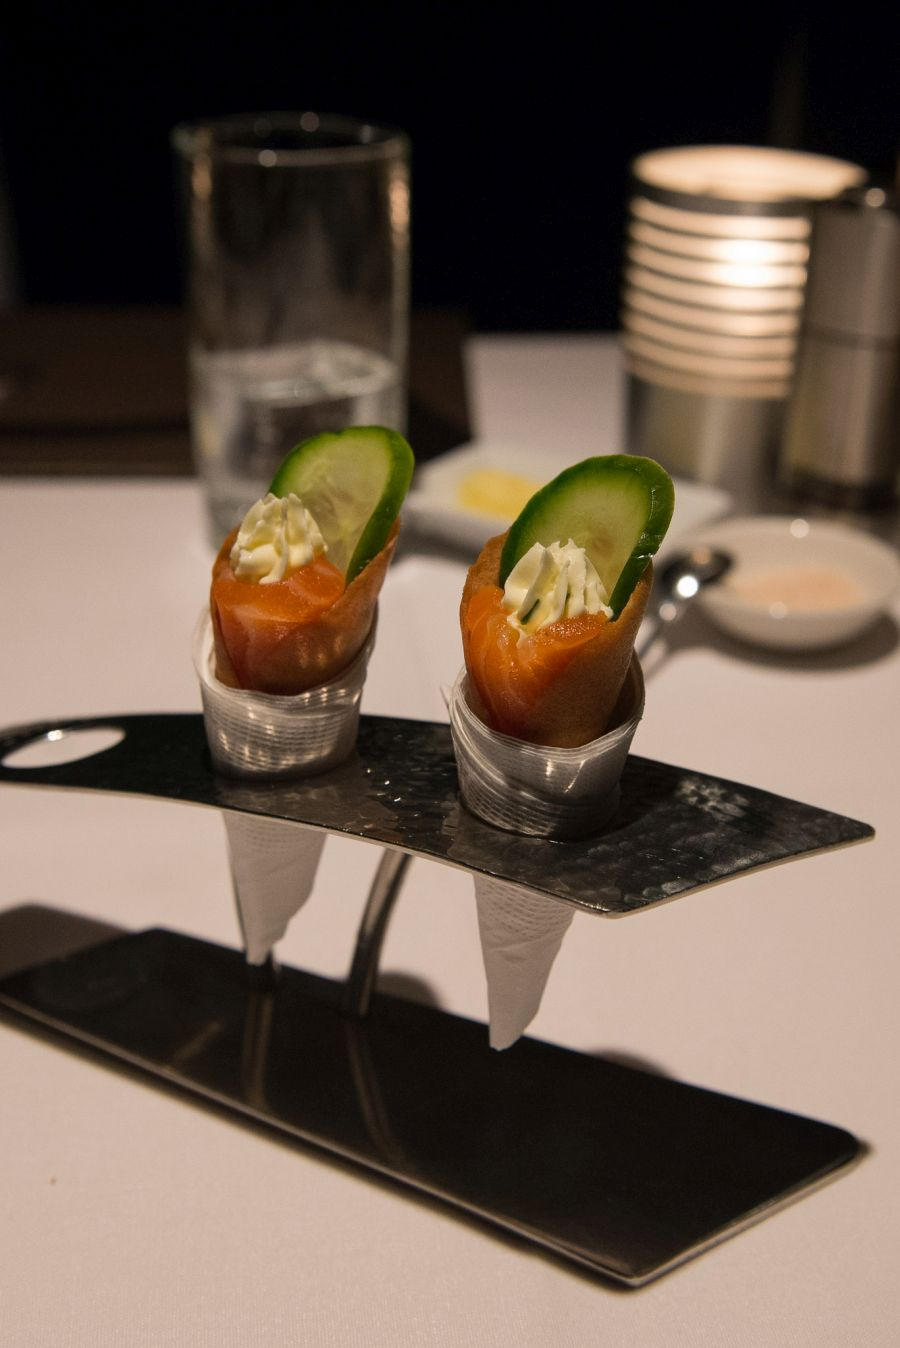 Amuse bouche - G&T cured salmon, cucumber and cream cheese in anchovy-flavoured cone